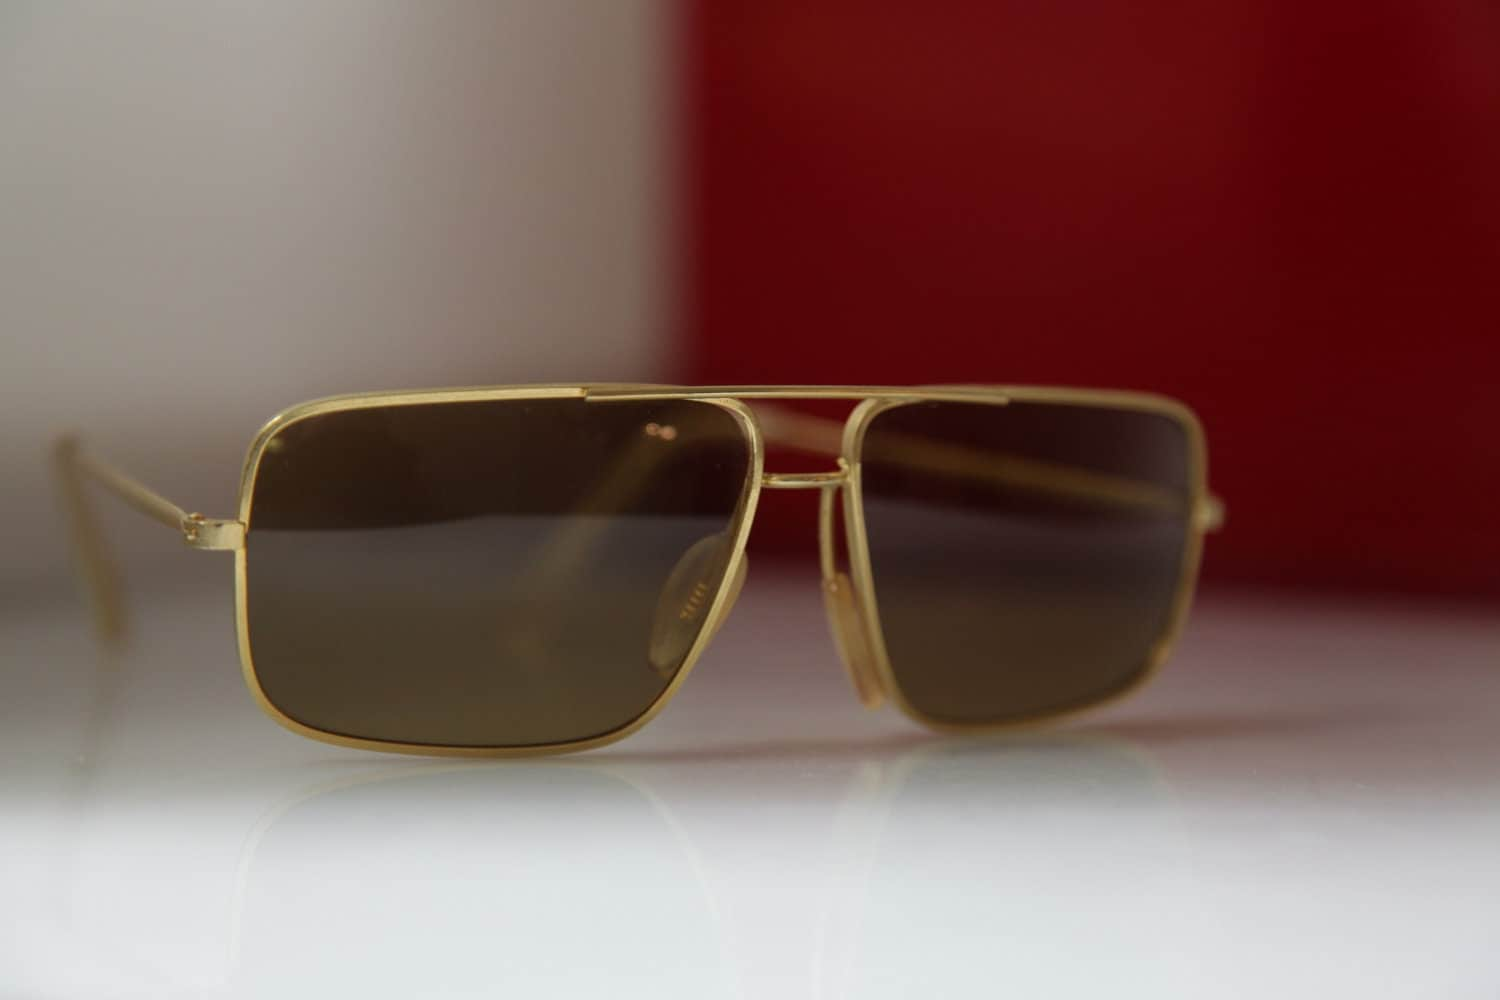 Gold Frame Vintage Glasses : Vintage Polaroid Gold Frame Sunglasses Tortoise Frame Golden